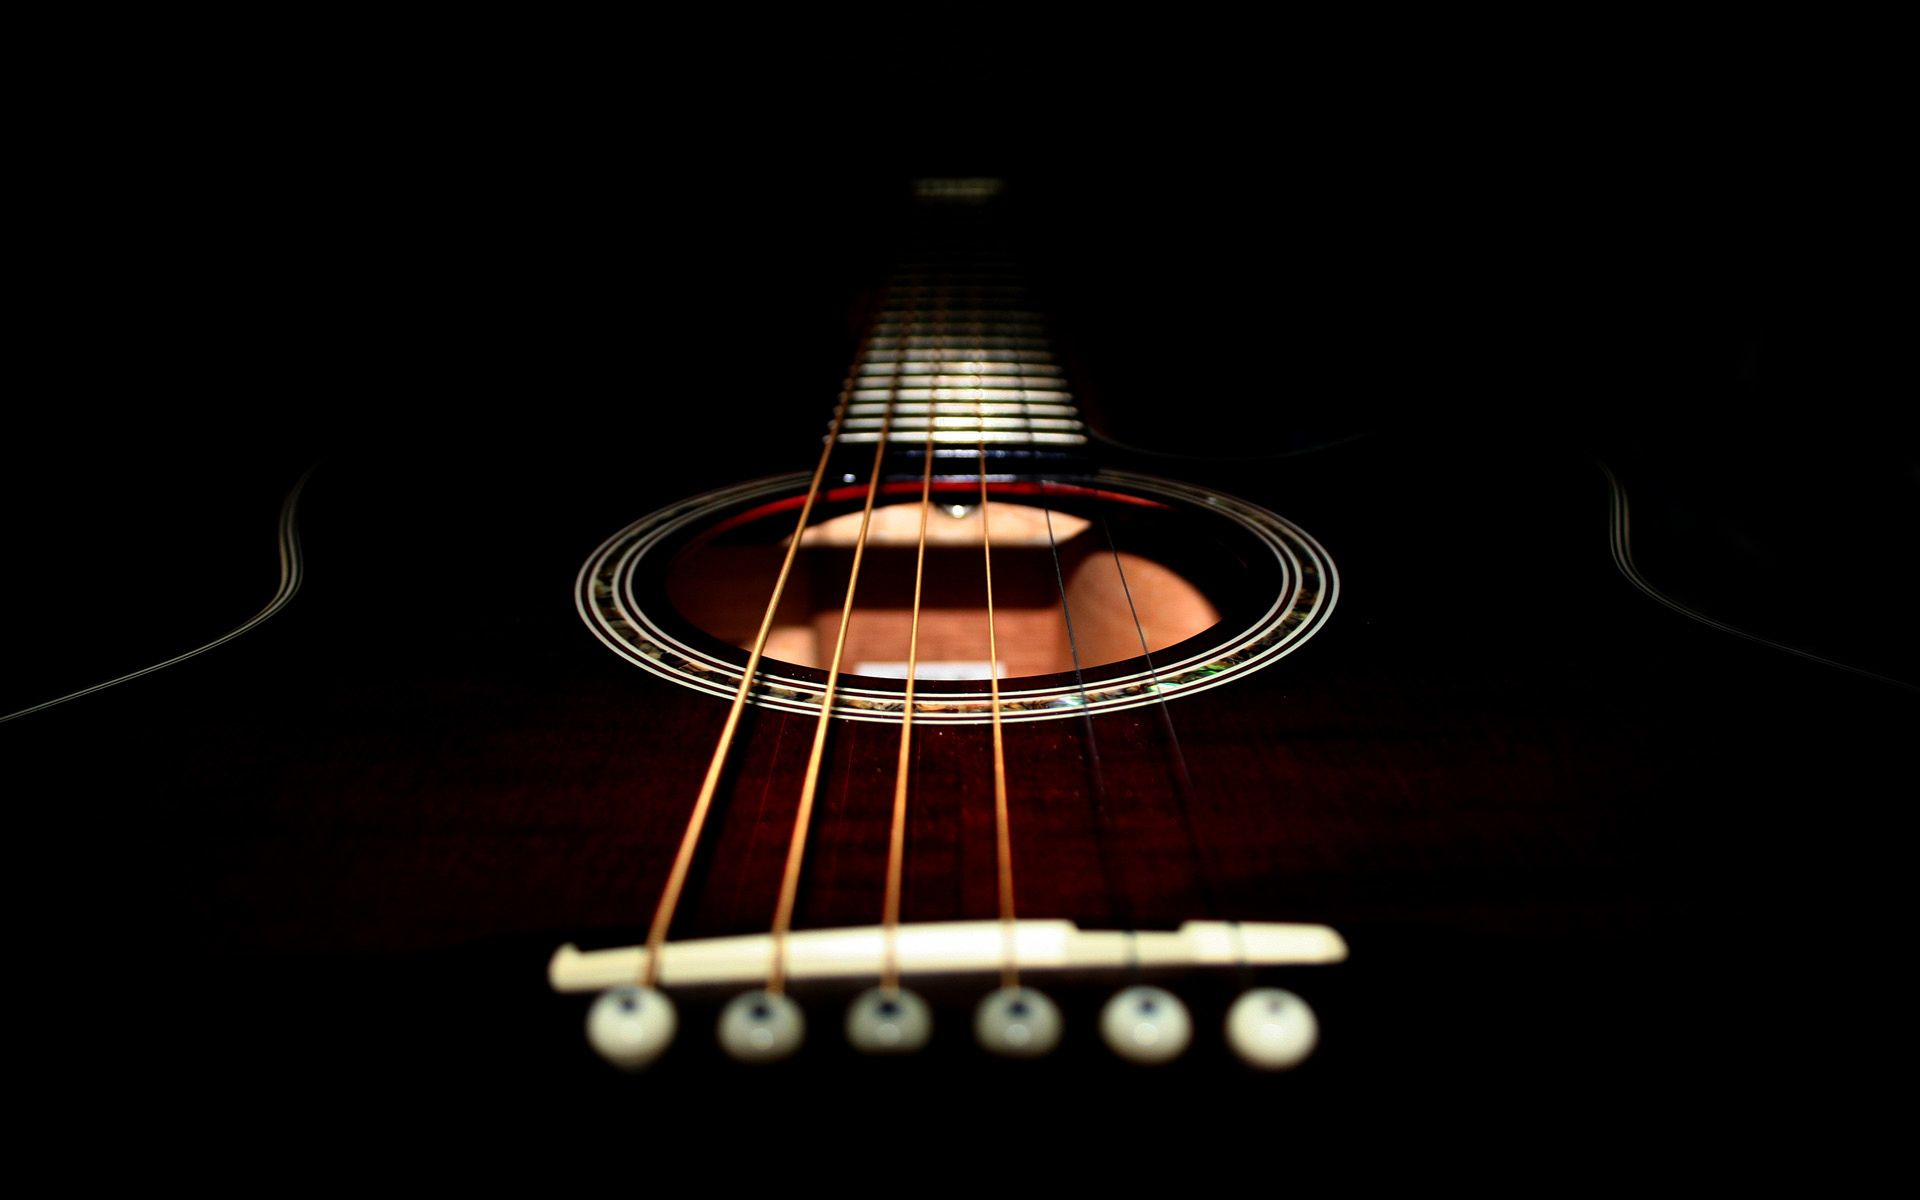 Guitar Wallpaper High Quality Resolution With